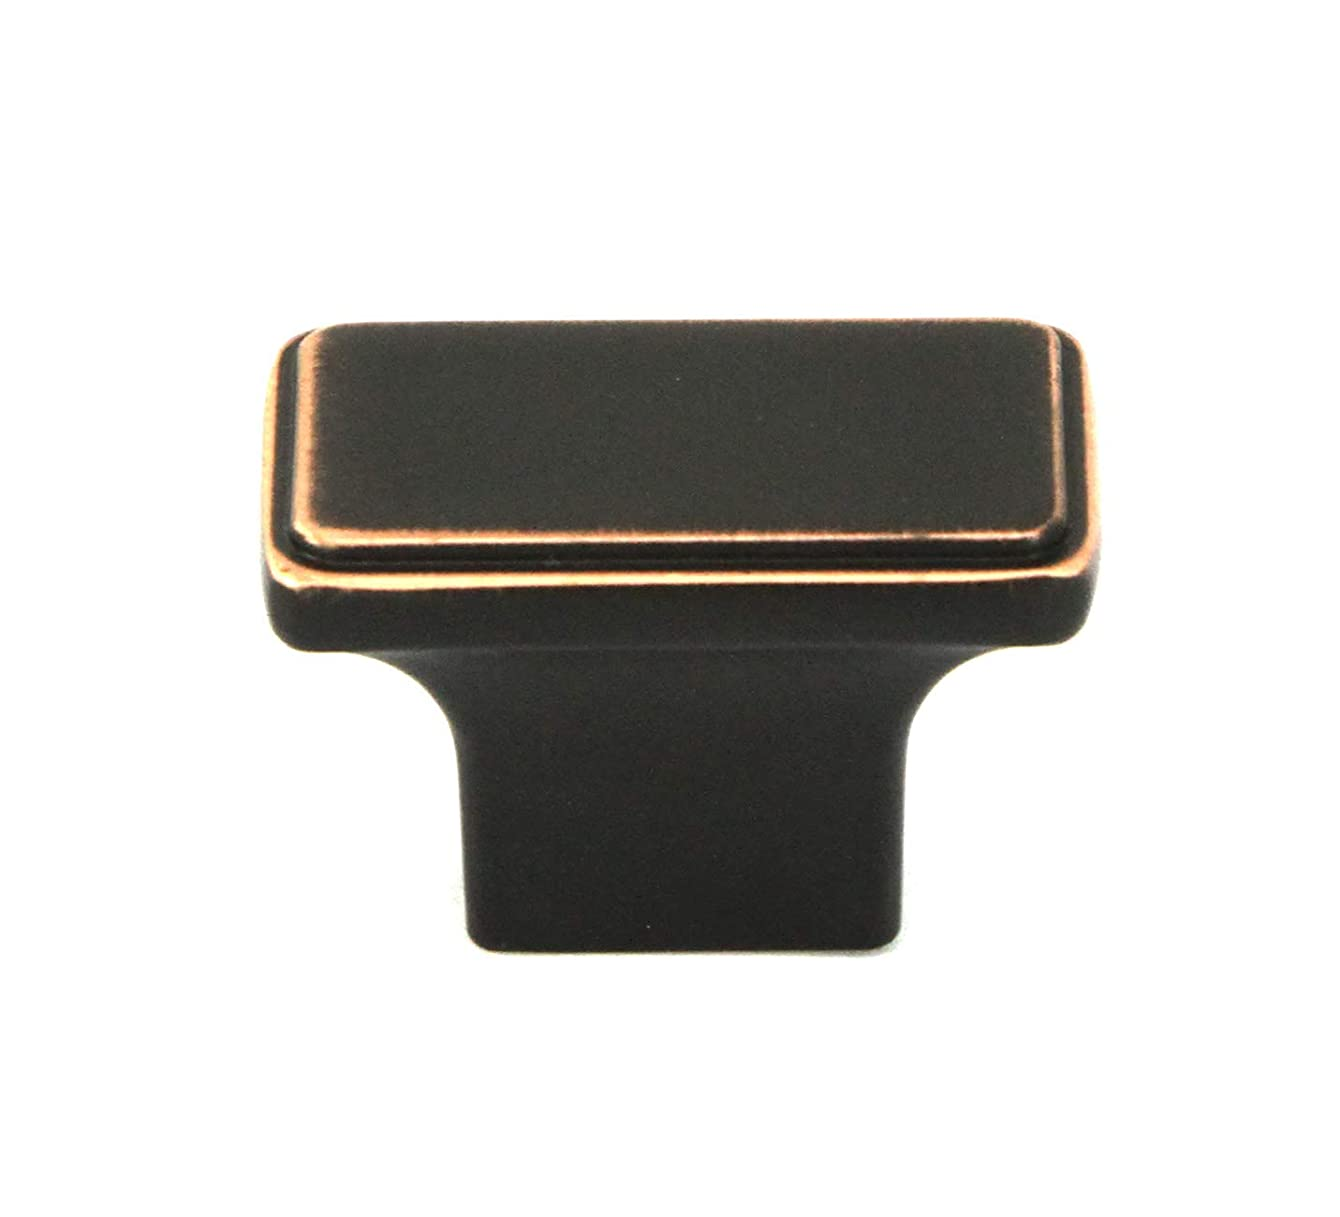 Kingsman NEPOLI Series 1-1/2 in. x 7/8 in. Solid Rectangular Cabinet Knob Handle (10, Oil Rubbed Bronze)